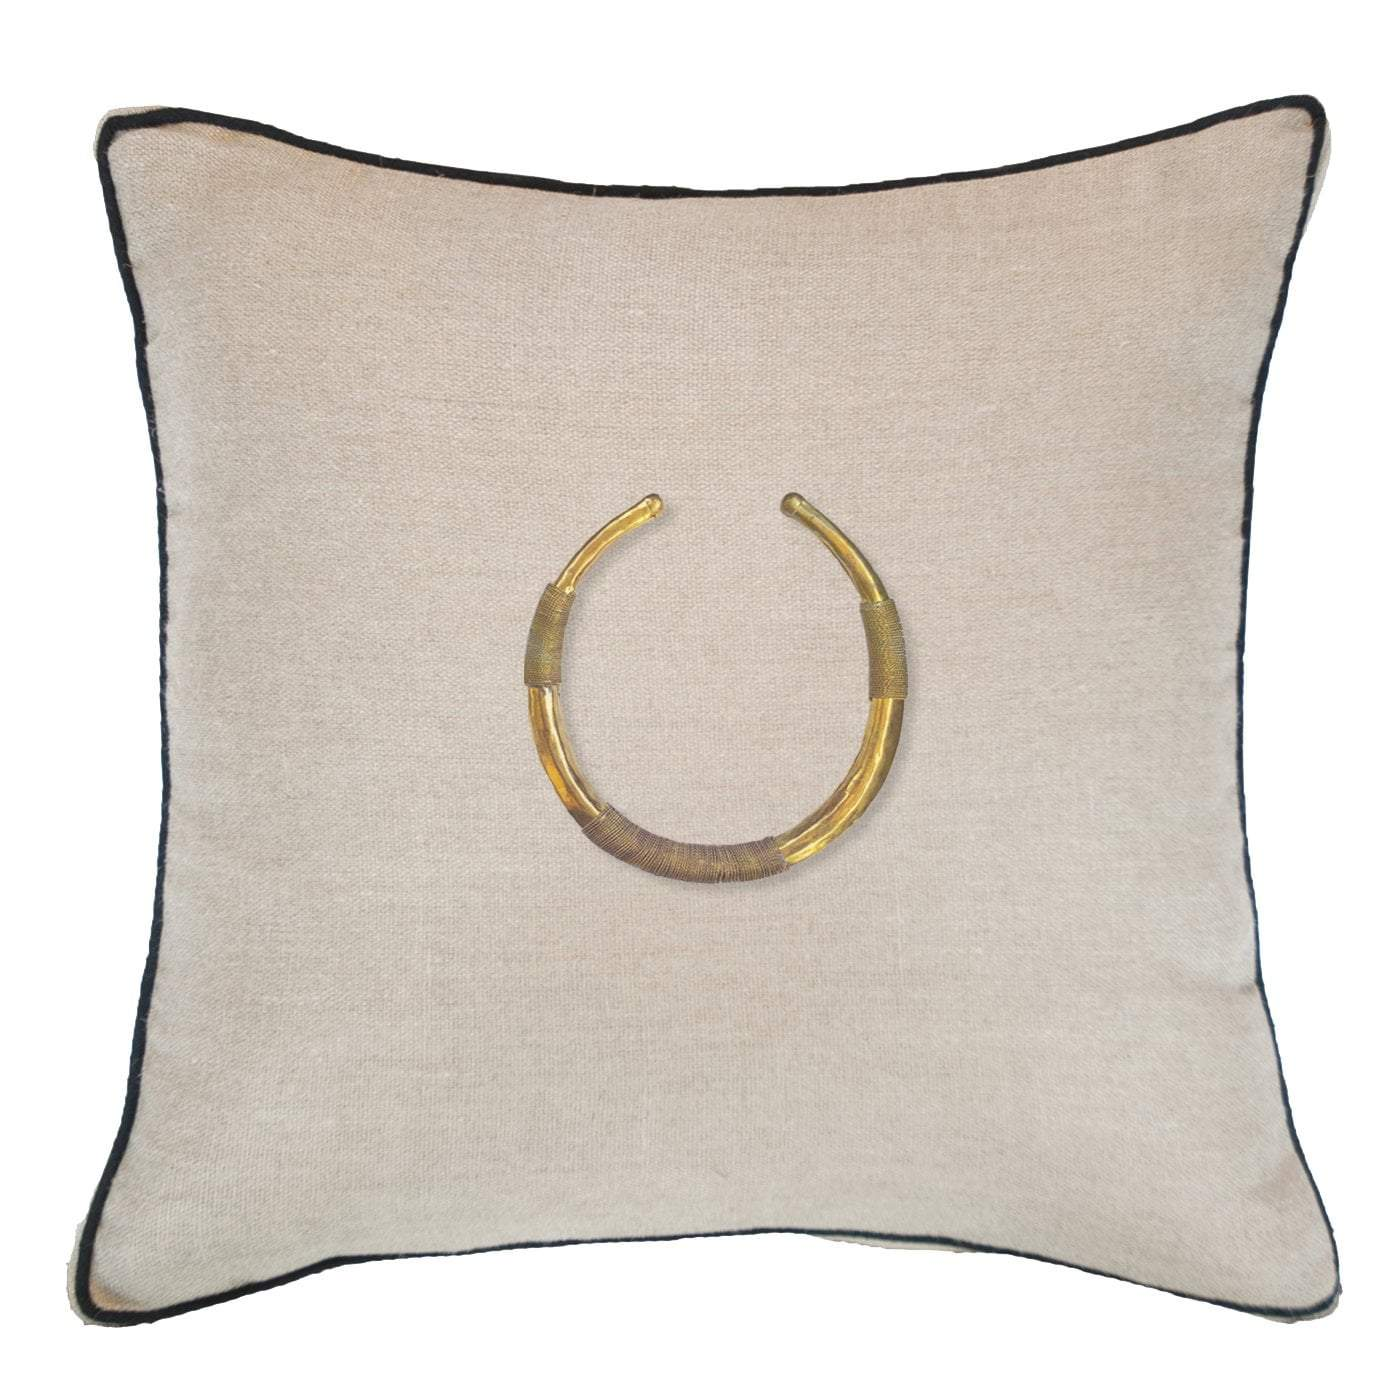 Bandhini Homewear Design Lounge Cushion Natural / 22 x 22 Amulet Delhi Natural Lounge Cushion 55x55cm